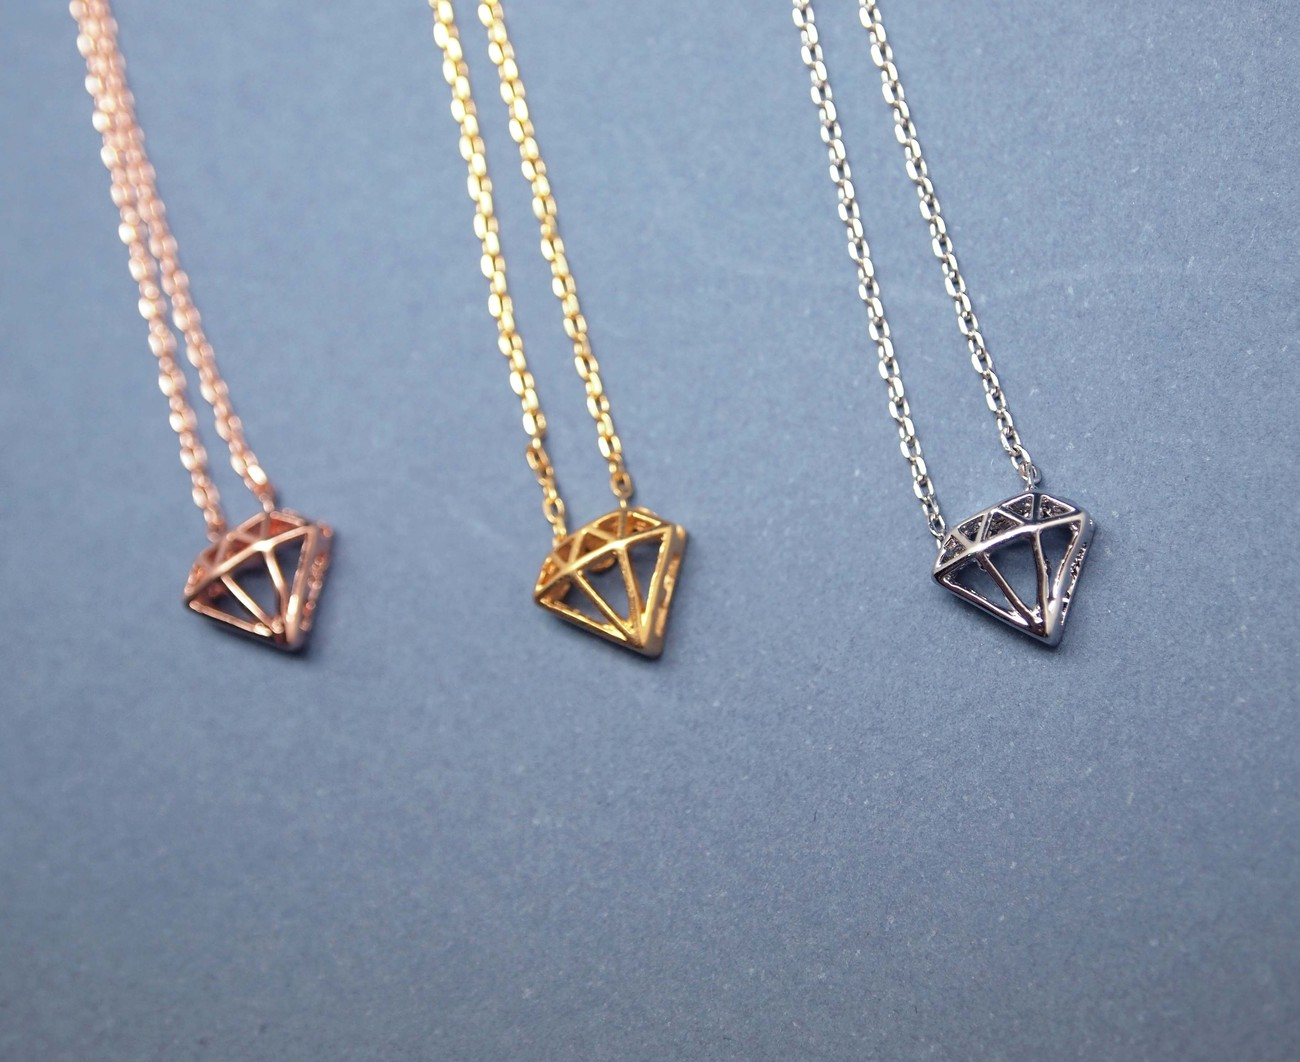 Diamond Shape Cutout pendant necklace in Gold / Silver / Pink gold